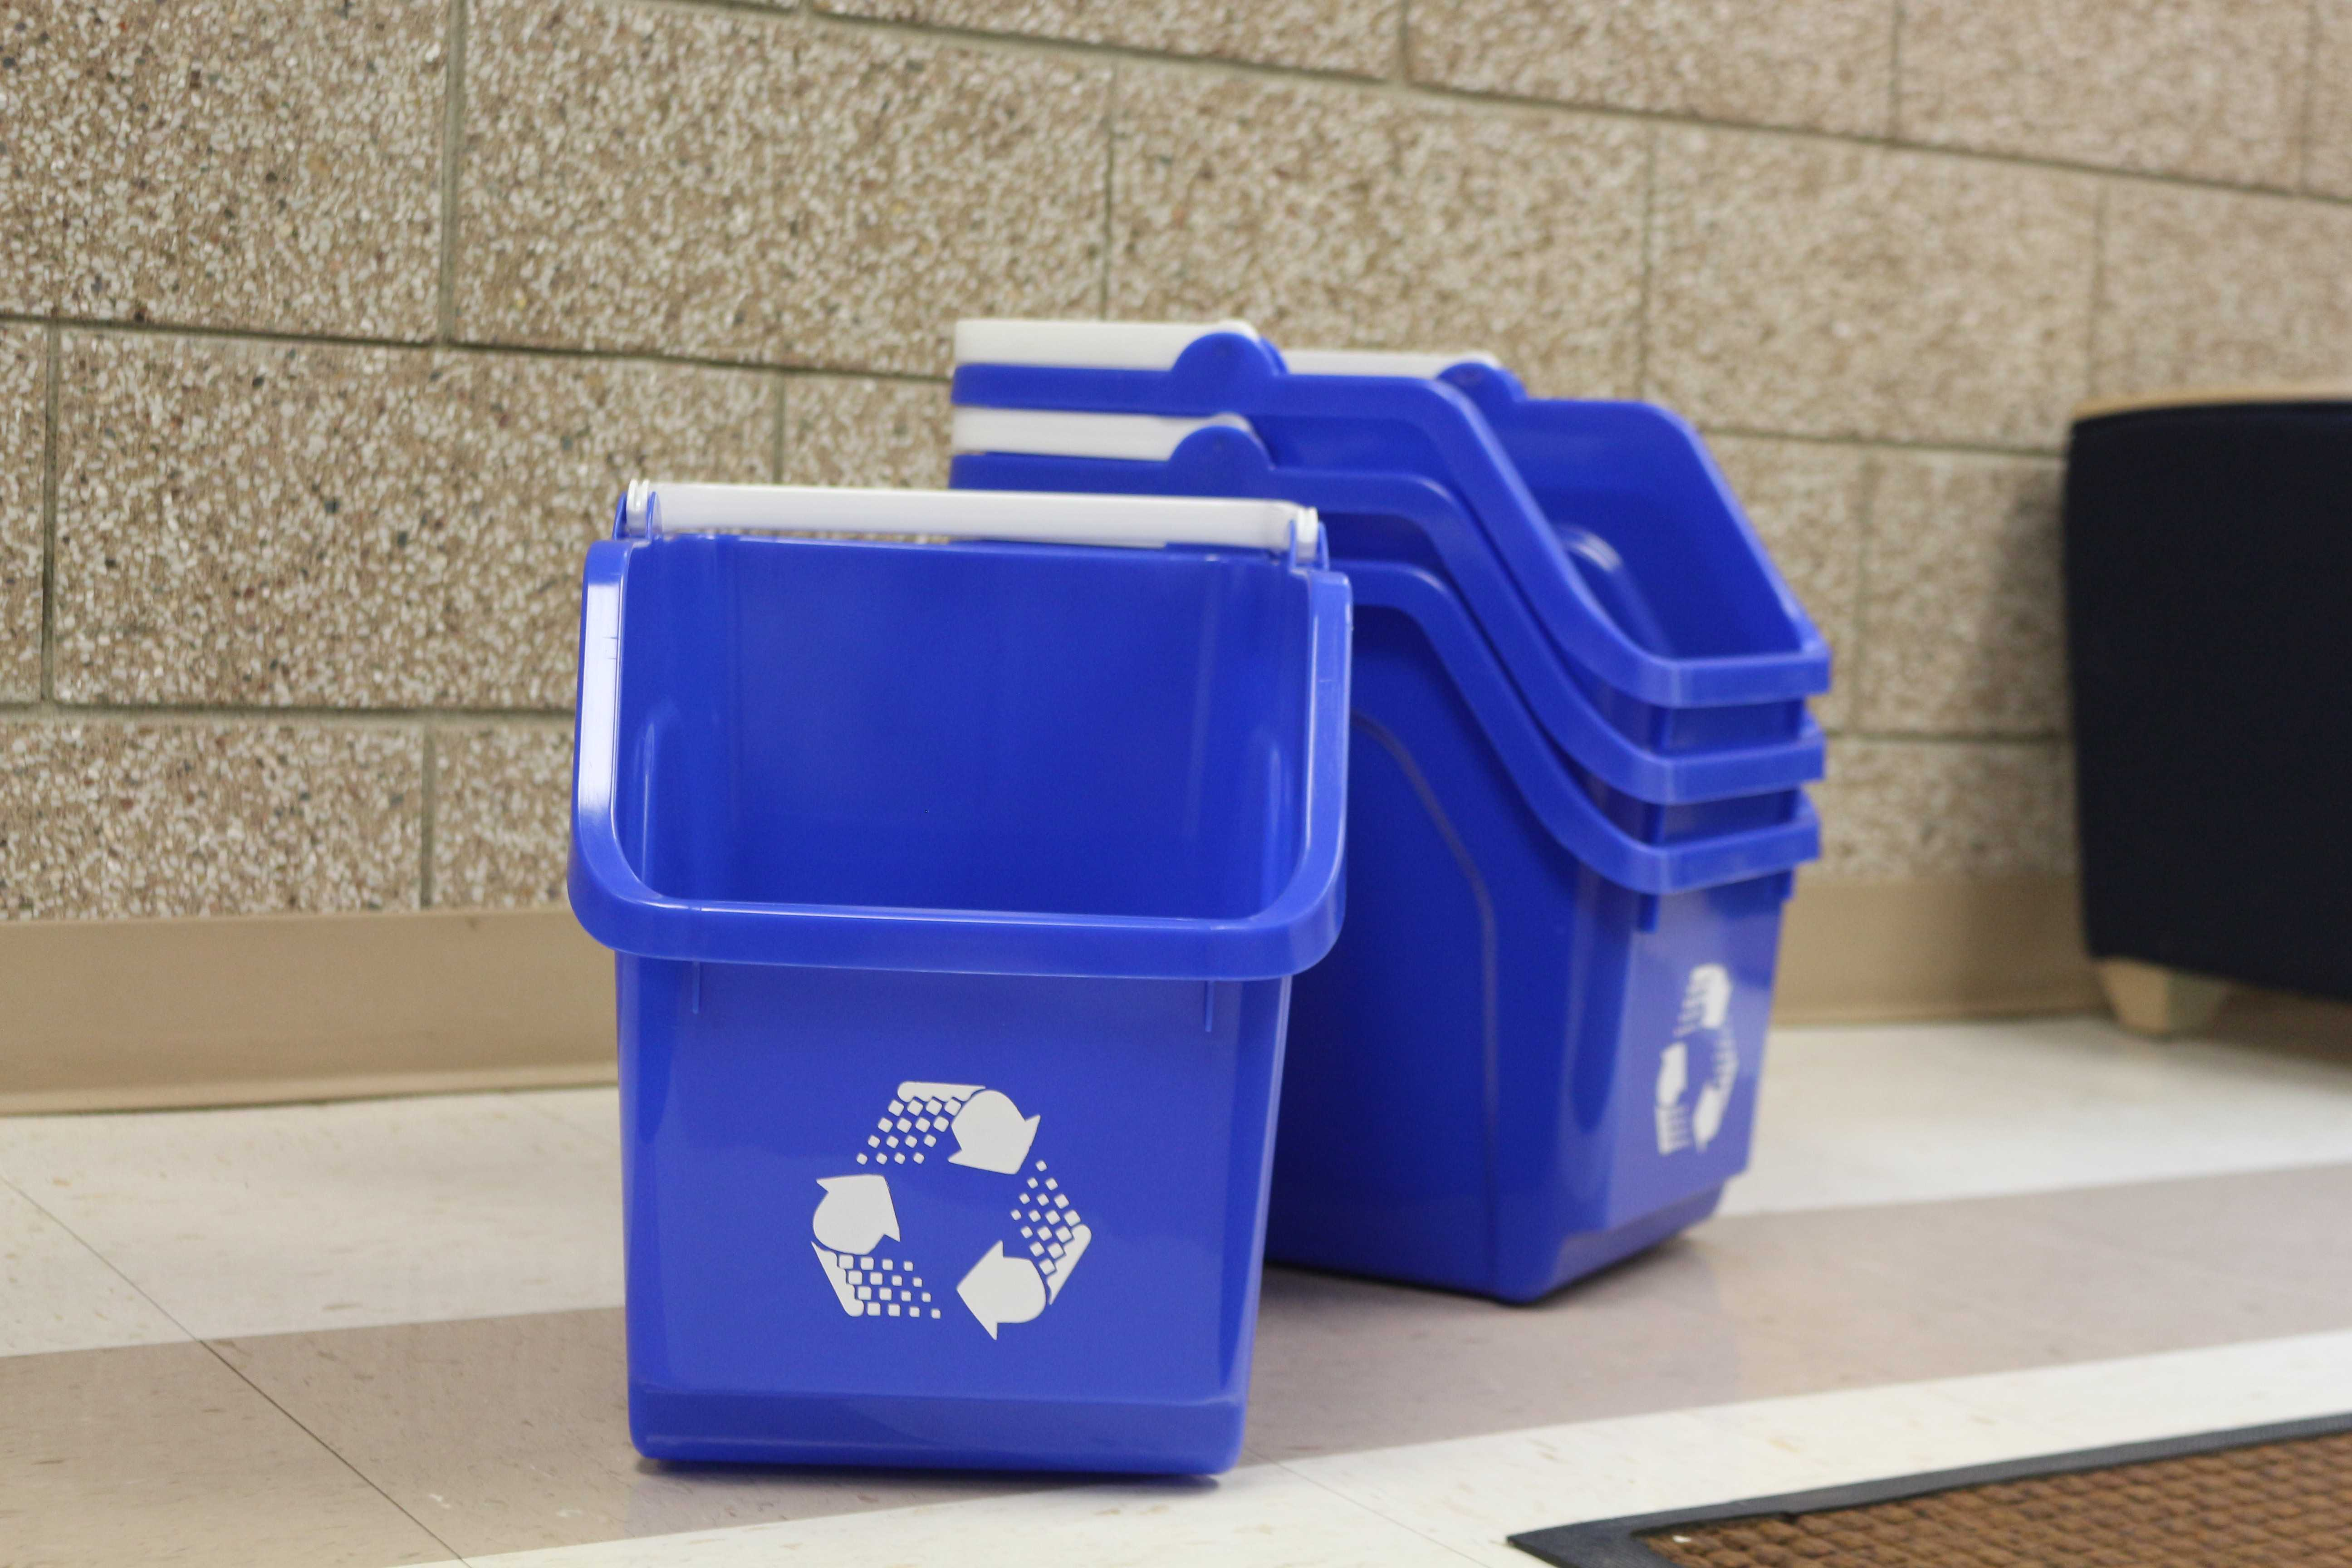 South Dakota State University received a 2017 Coca-Cola / Keep America Beautiful Public Space Recycling Bin Grant. Along with funding from residential life to buy 700 more bins, around 2,300 bins will be placed in nearly 2,250 rooms on campus.